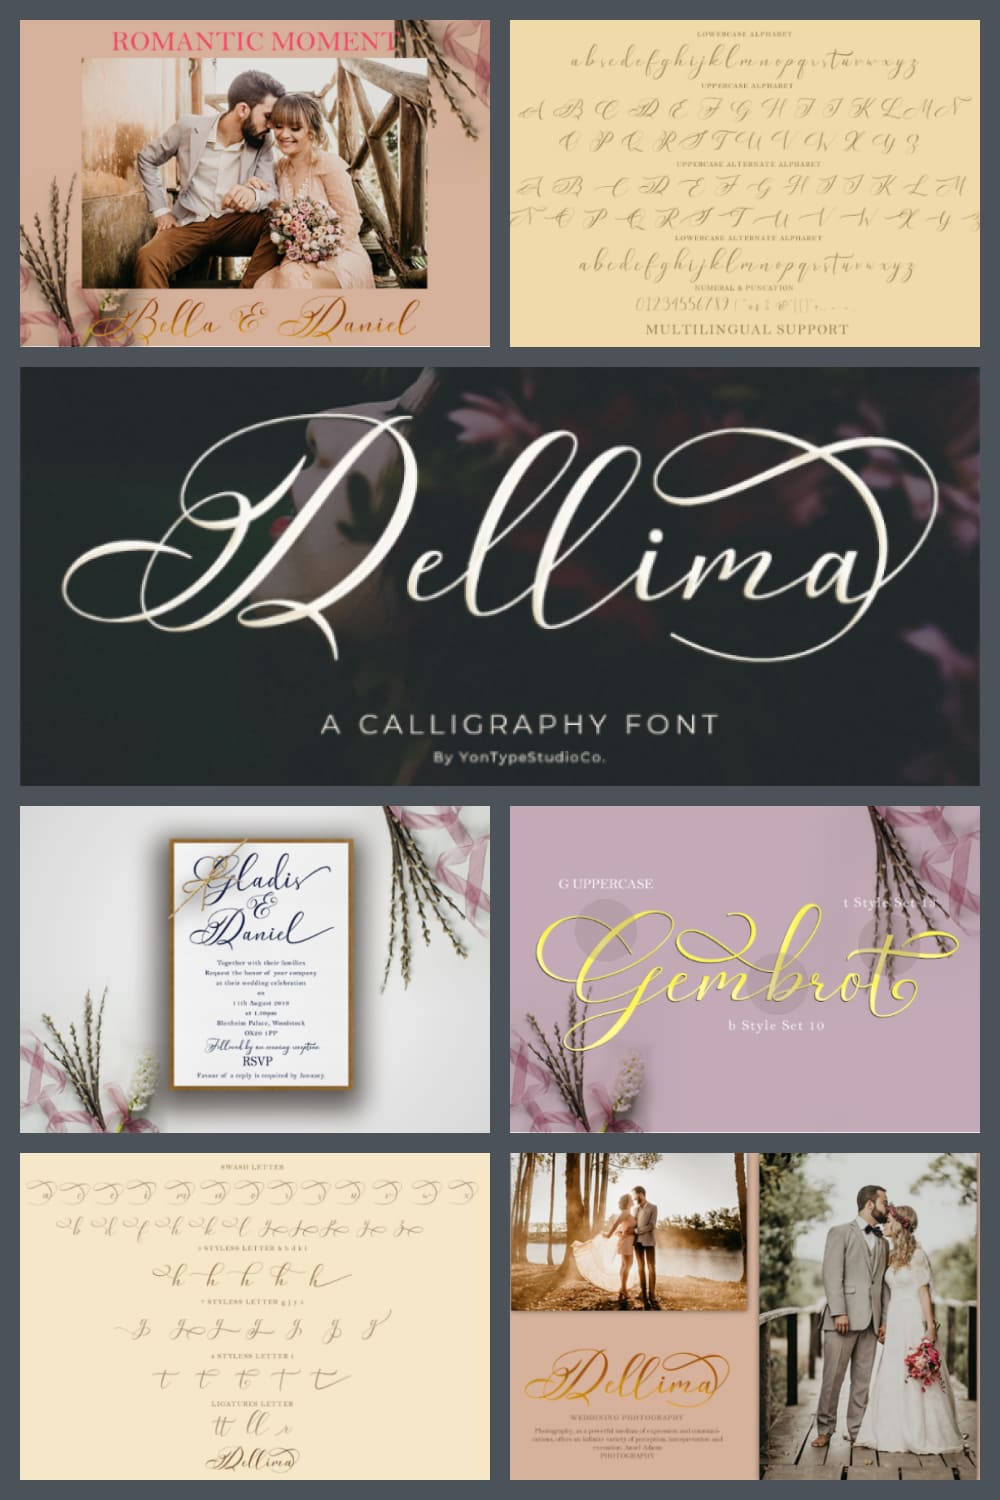 This is a new modern calligraphy font. This beautiful script is for those who need some elegance and style for their designs and is perfect for wedding invitations, date cards and feminine branding.